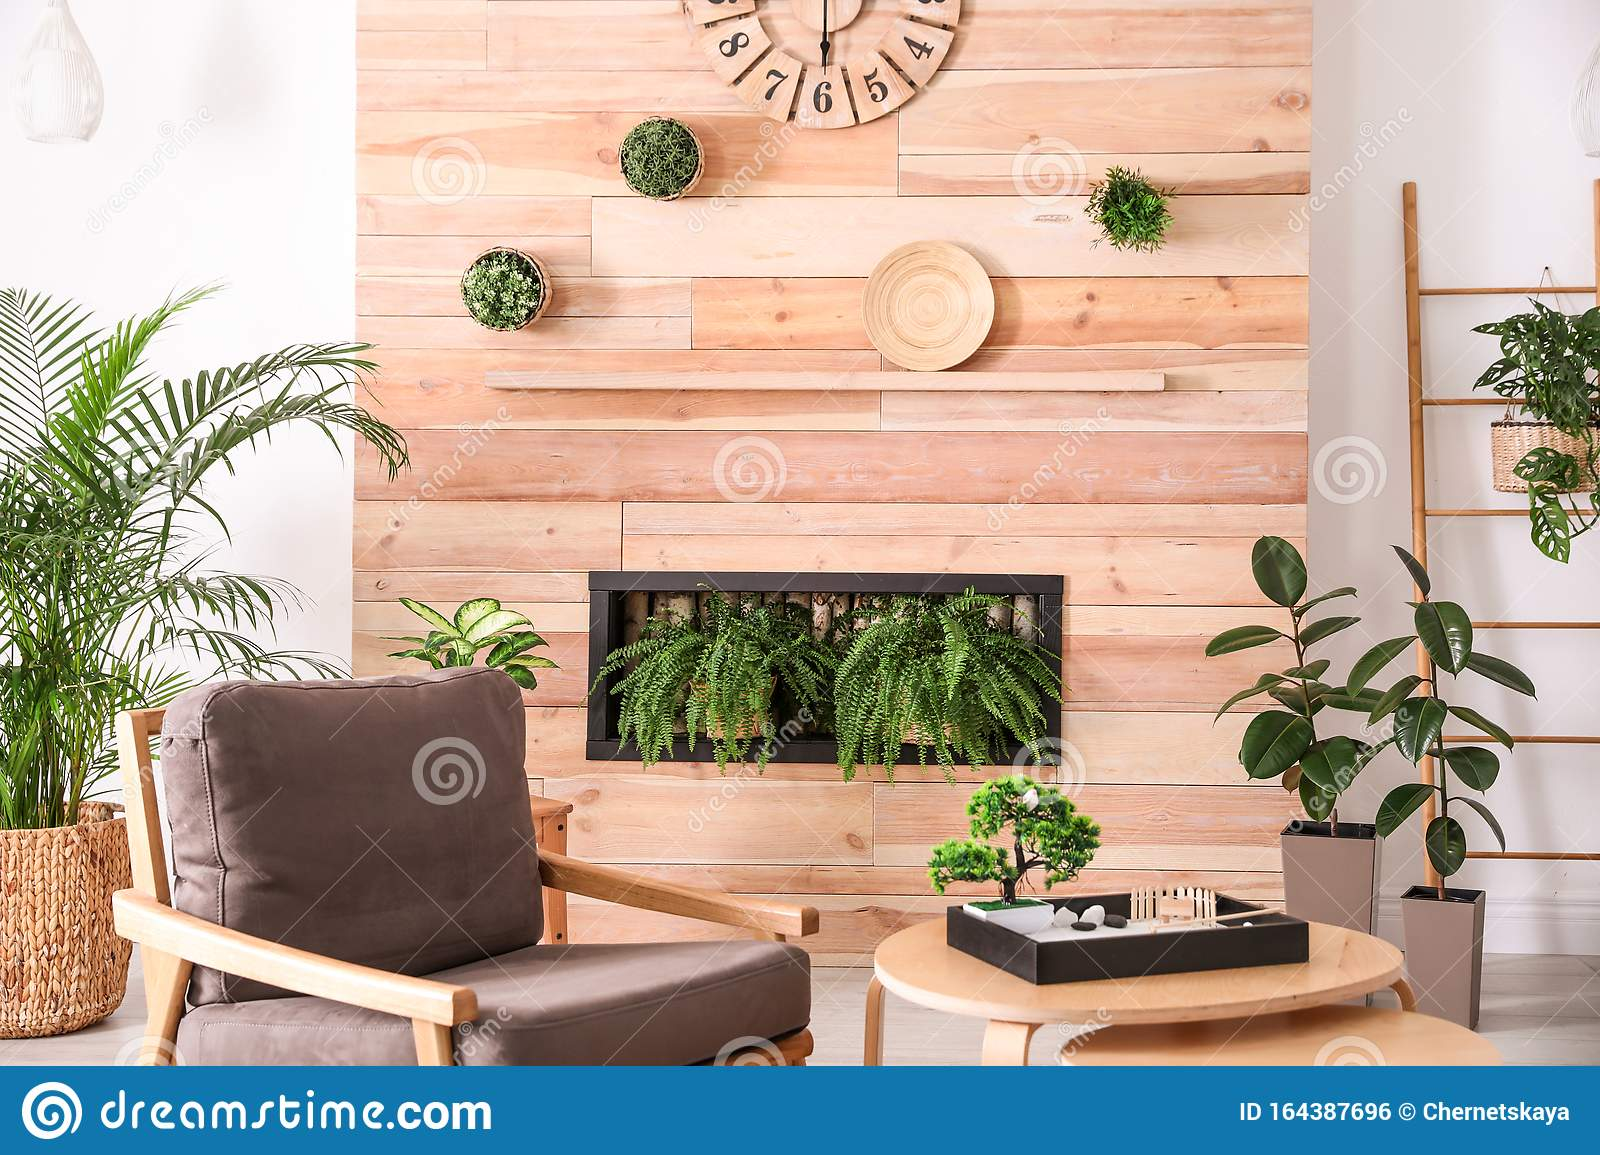 Stylish Living Room Interior With Armchair Plants And Miniature Zen Garden Home Design Ideas Stock Photo Image Of Decor Fern 164387696